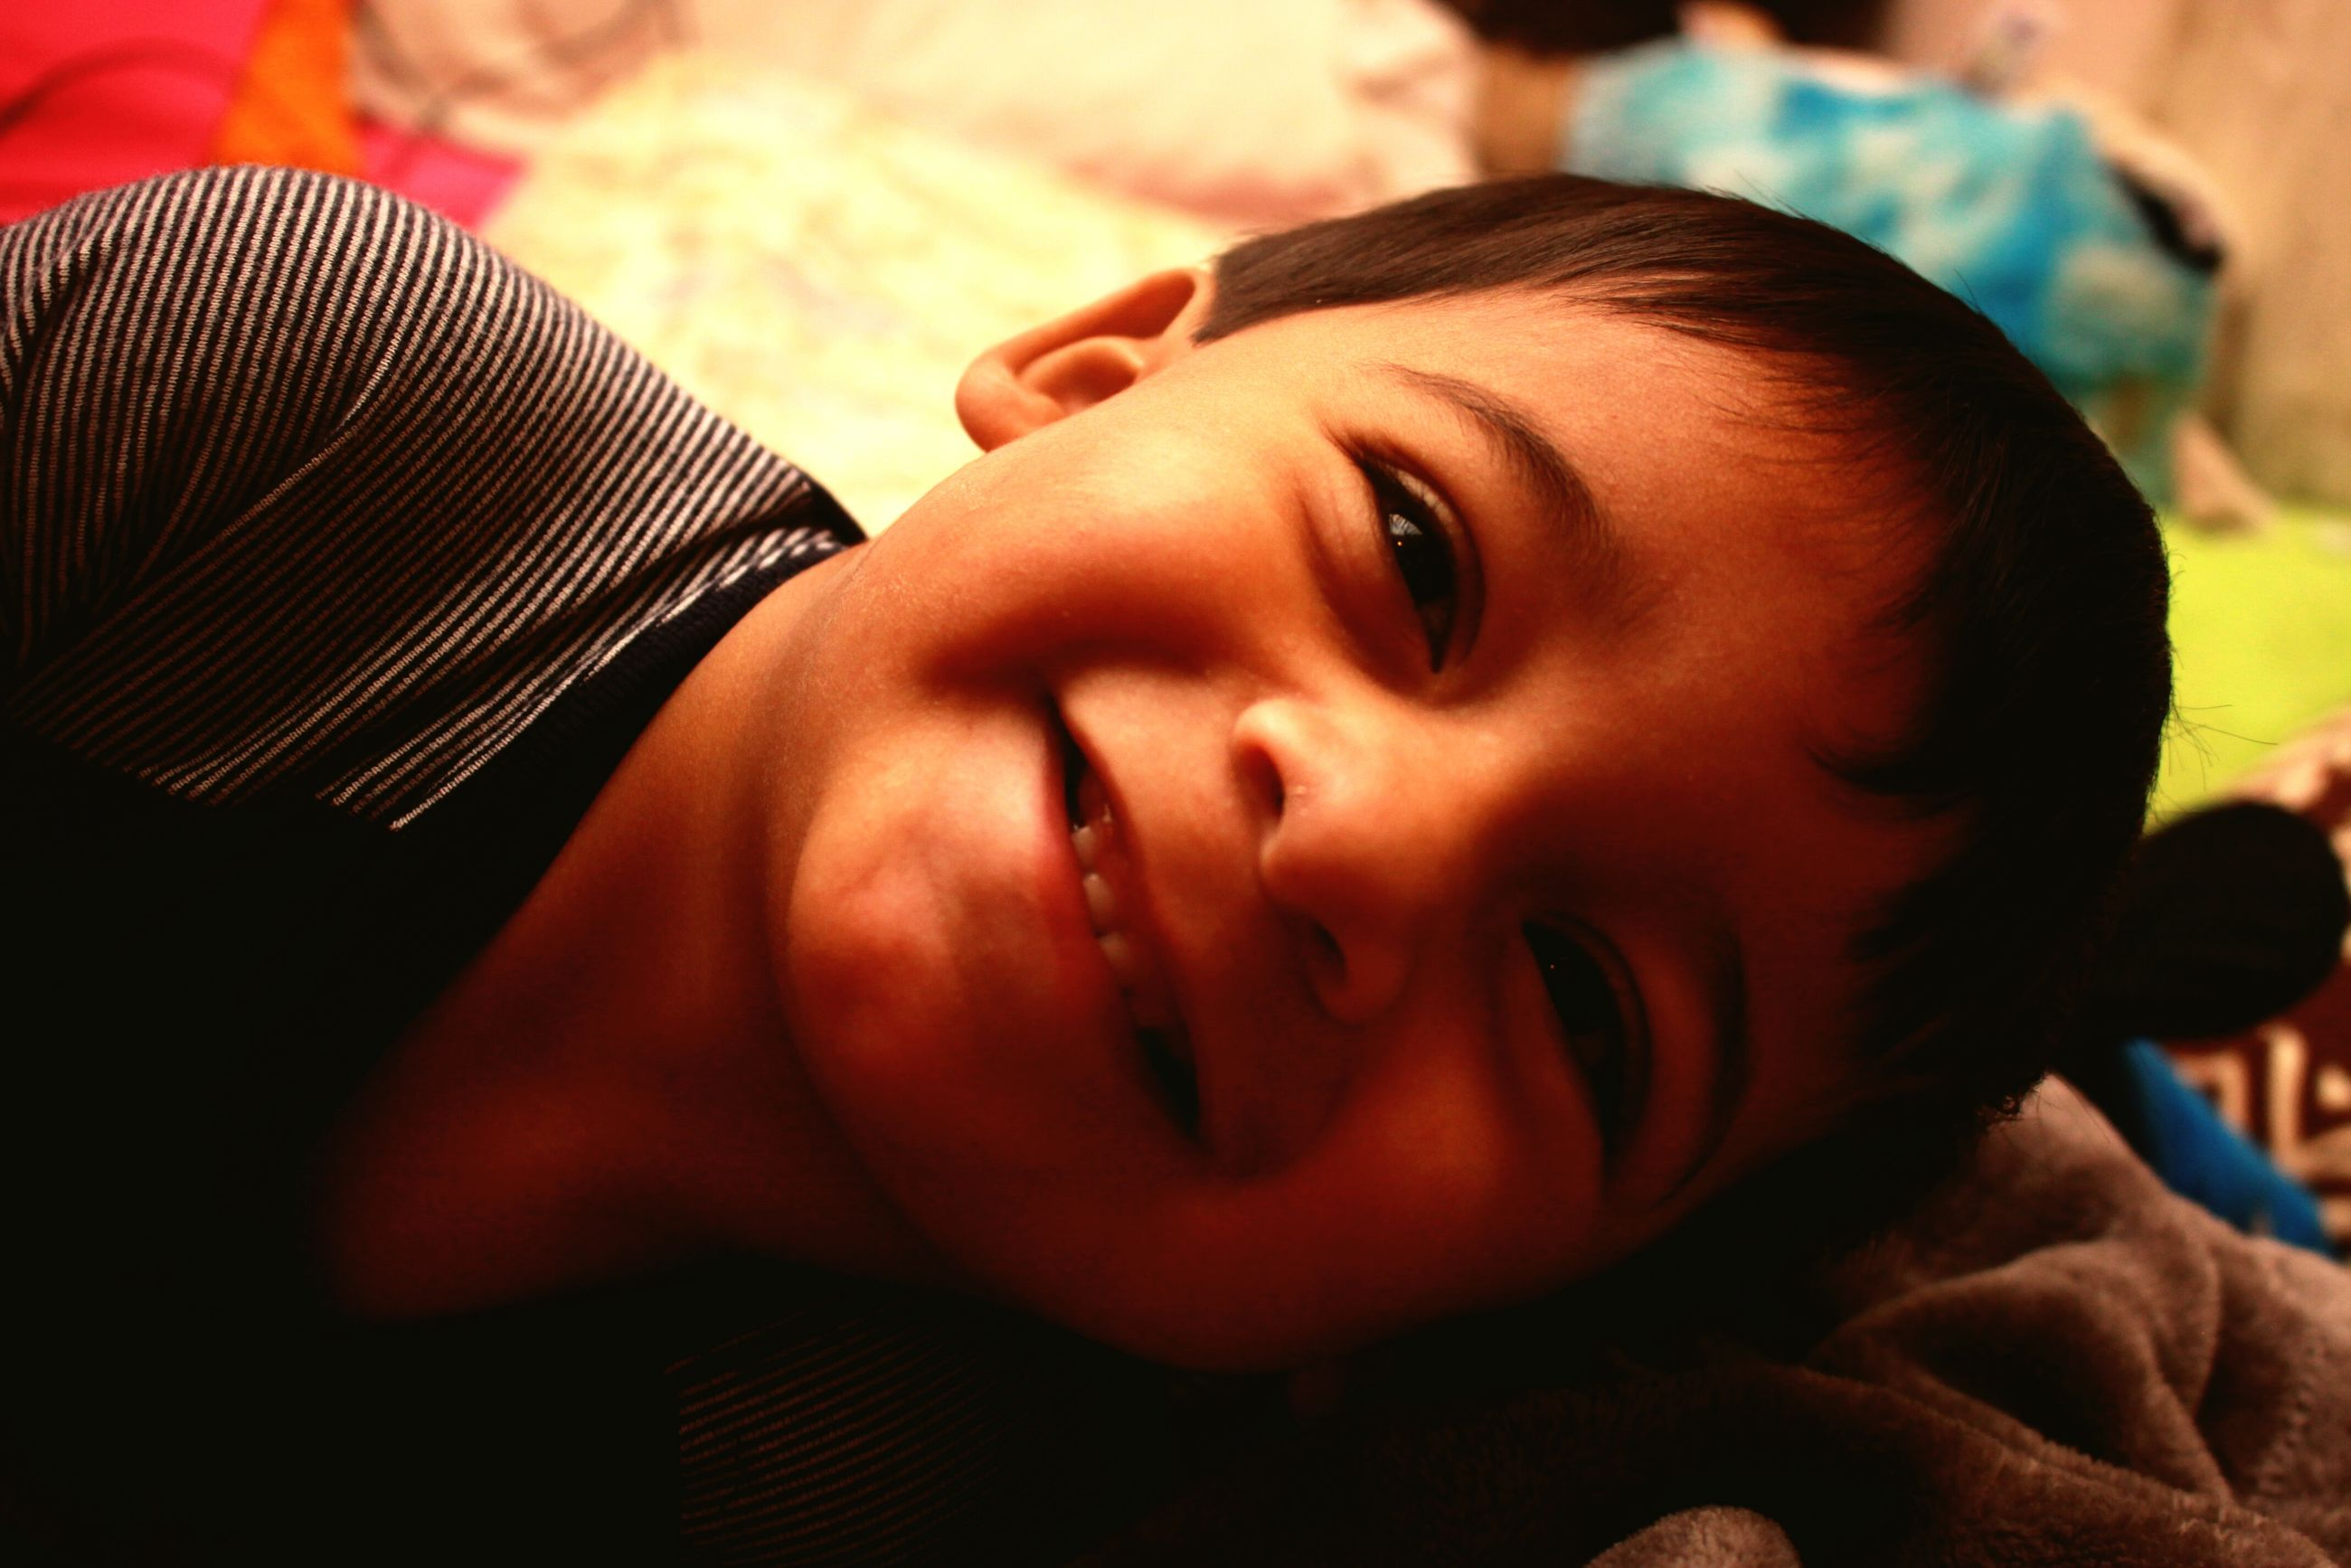 childhood, innocence, cute, elementary age, person, boys, girls, headshot, portrait, looking at camera, babyhood, close-up, baby, focus on foreground, lifestyles, indoors, leisure activity, toddler